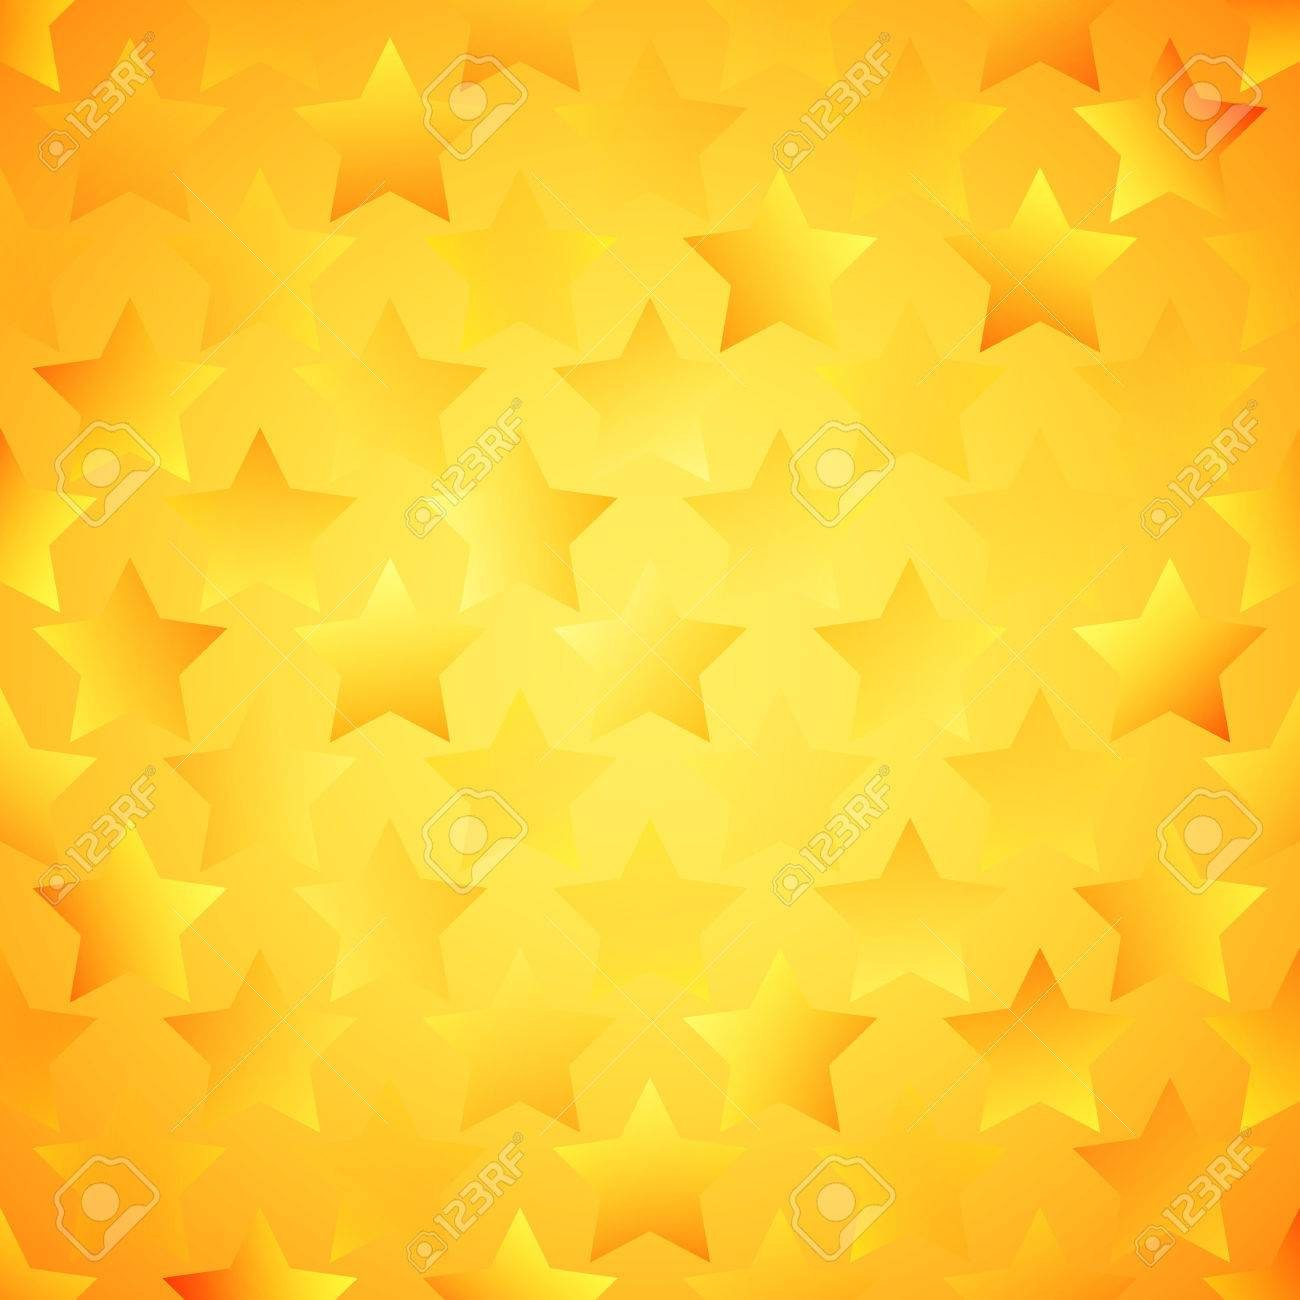 Abstract Bright Star Wallpaper Illustration For Modern Popular Design Cool Pattern Background Yellow